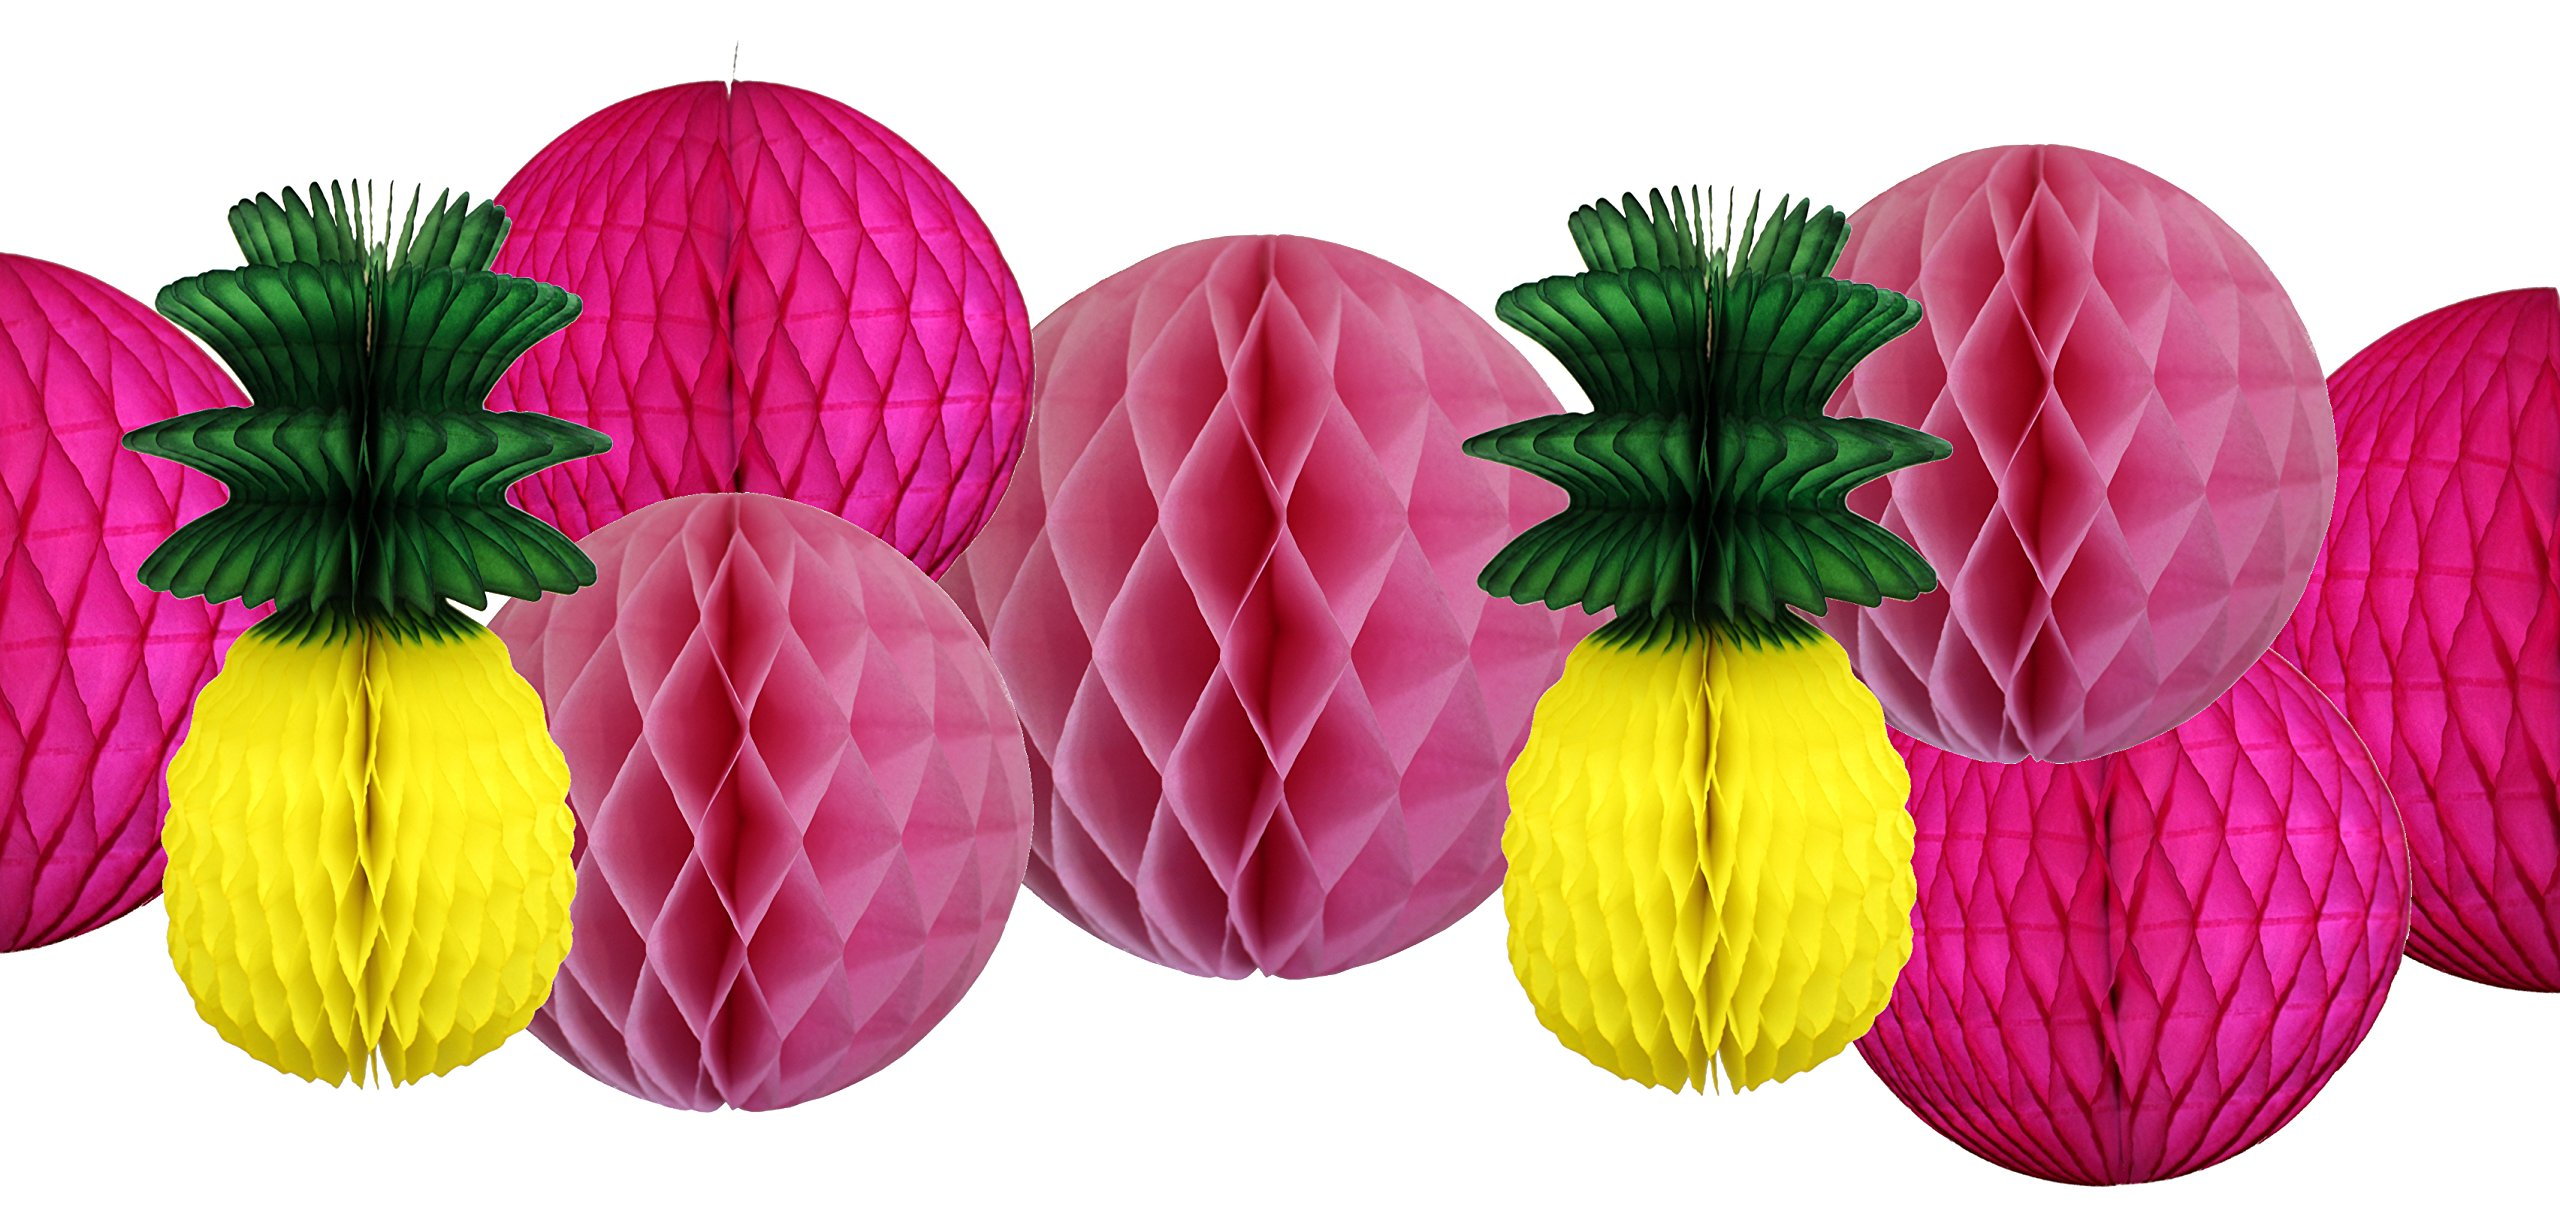 12-Piece Honeycomb Tissue Ball and Pineapple Fruit Party Decoration Kit (12 and 8 inch)